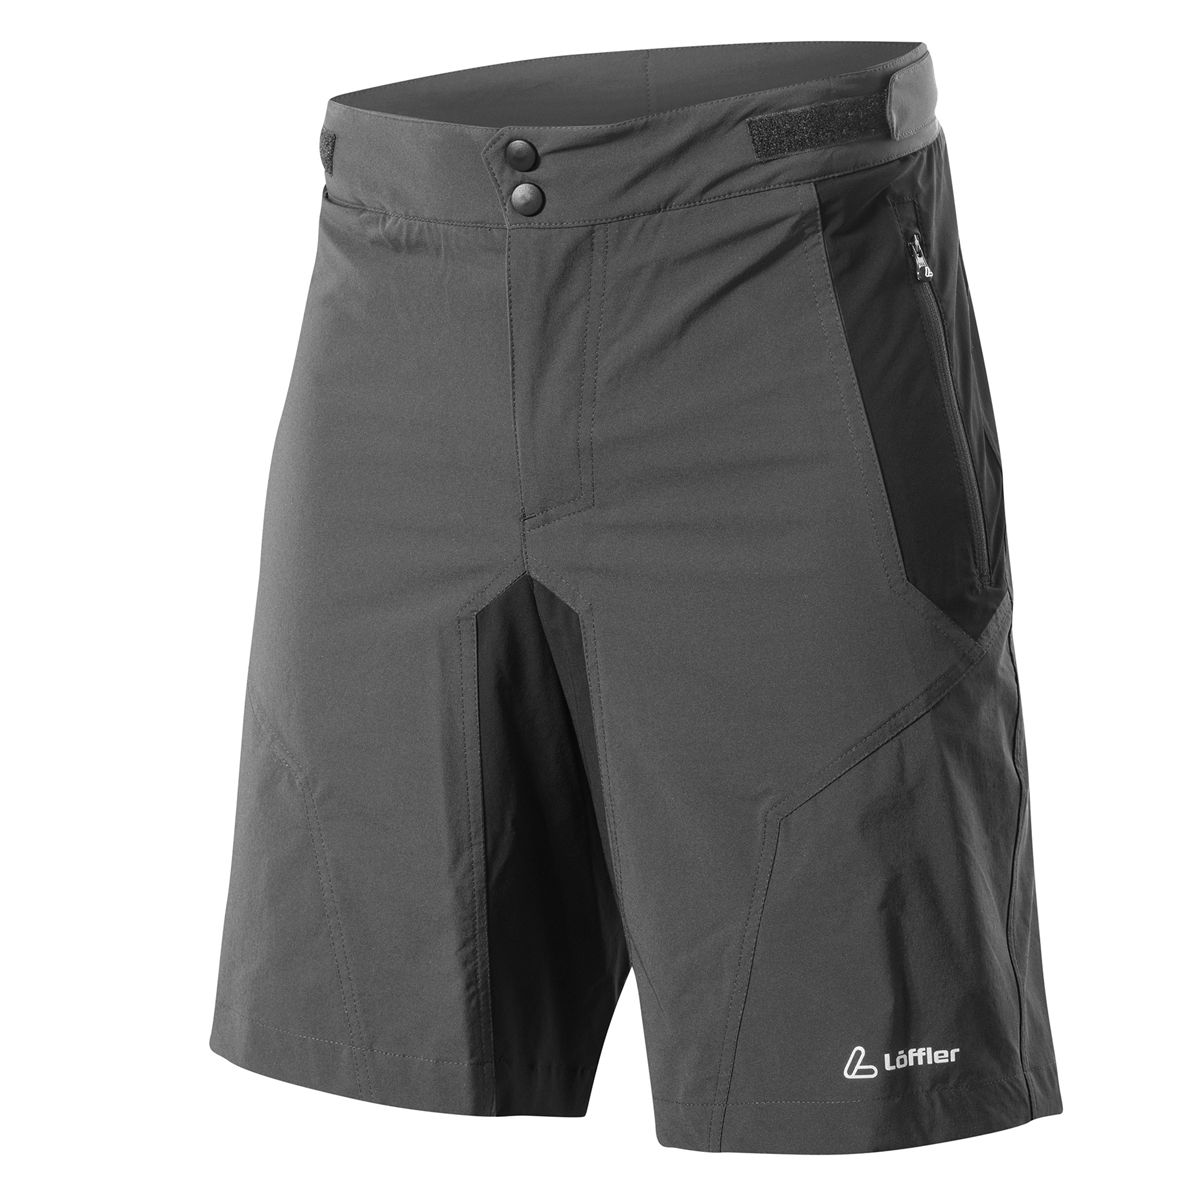 Löffler TOURANO CSL cycling shorts | Trousers